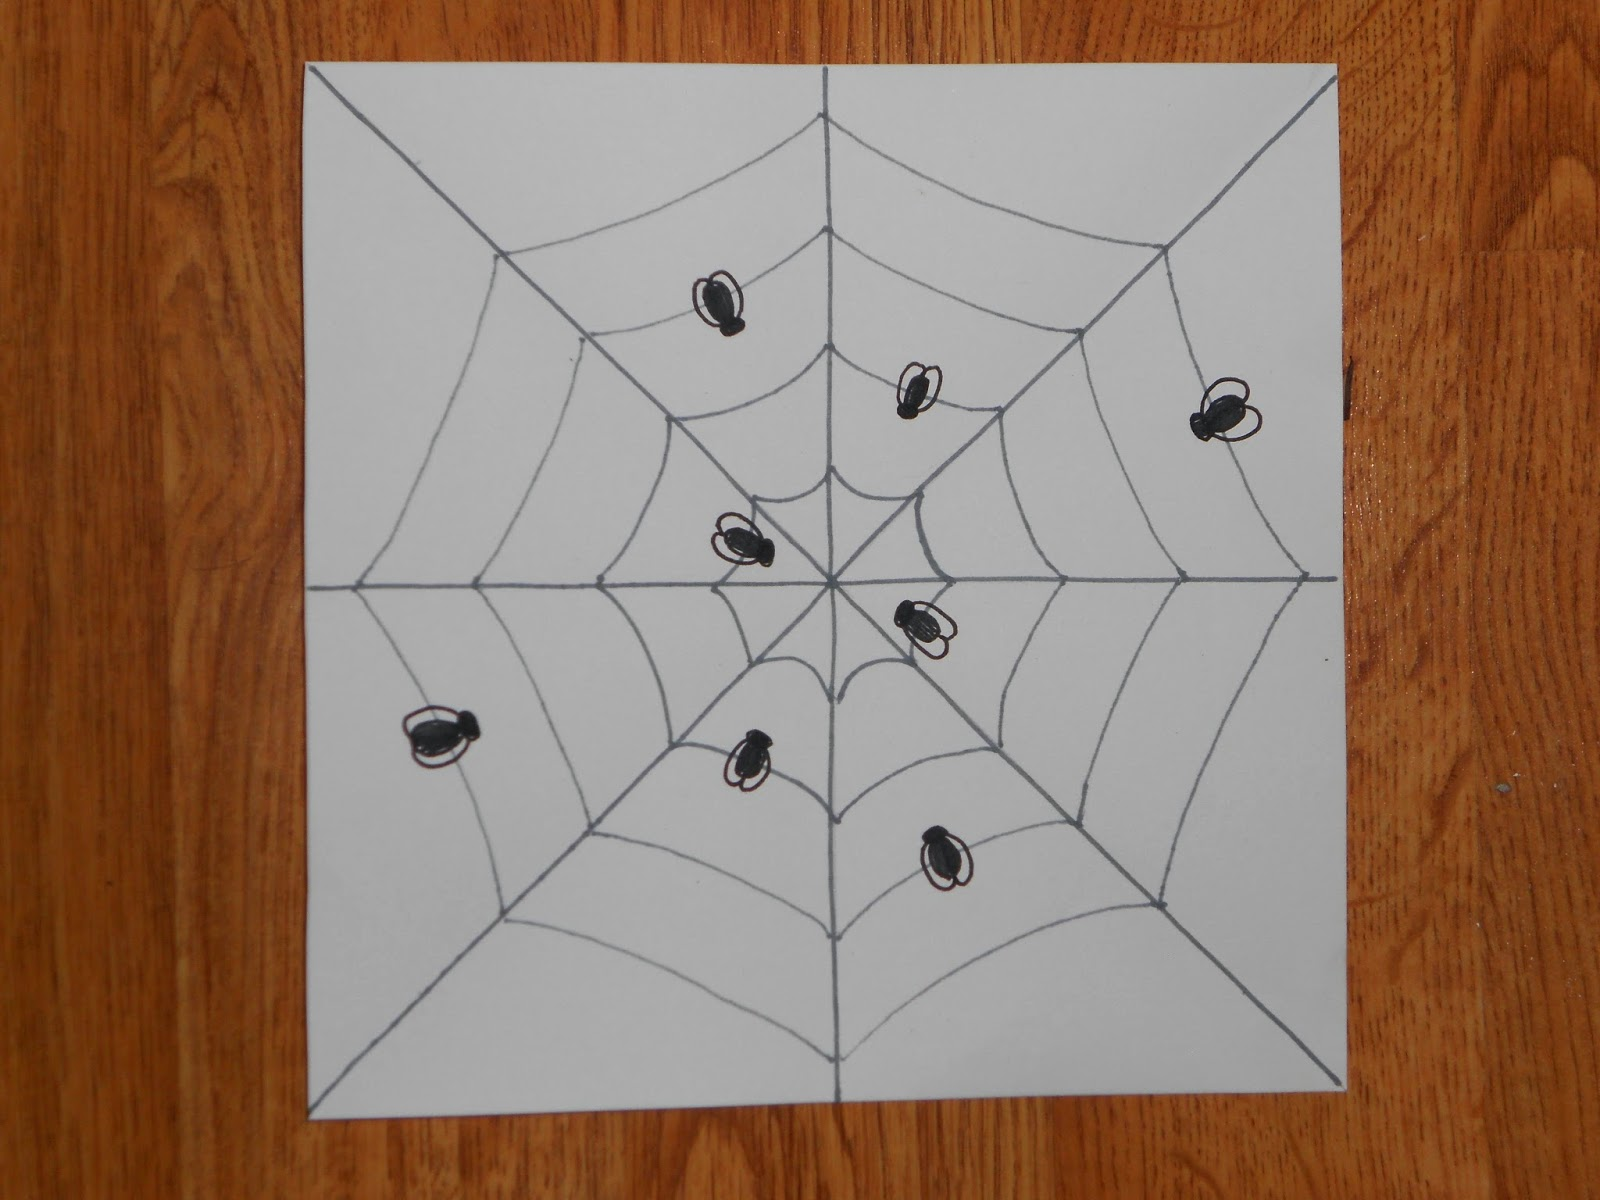 Artistry Of Education Rotational Symmetry An Art Project